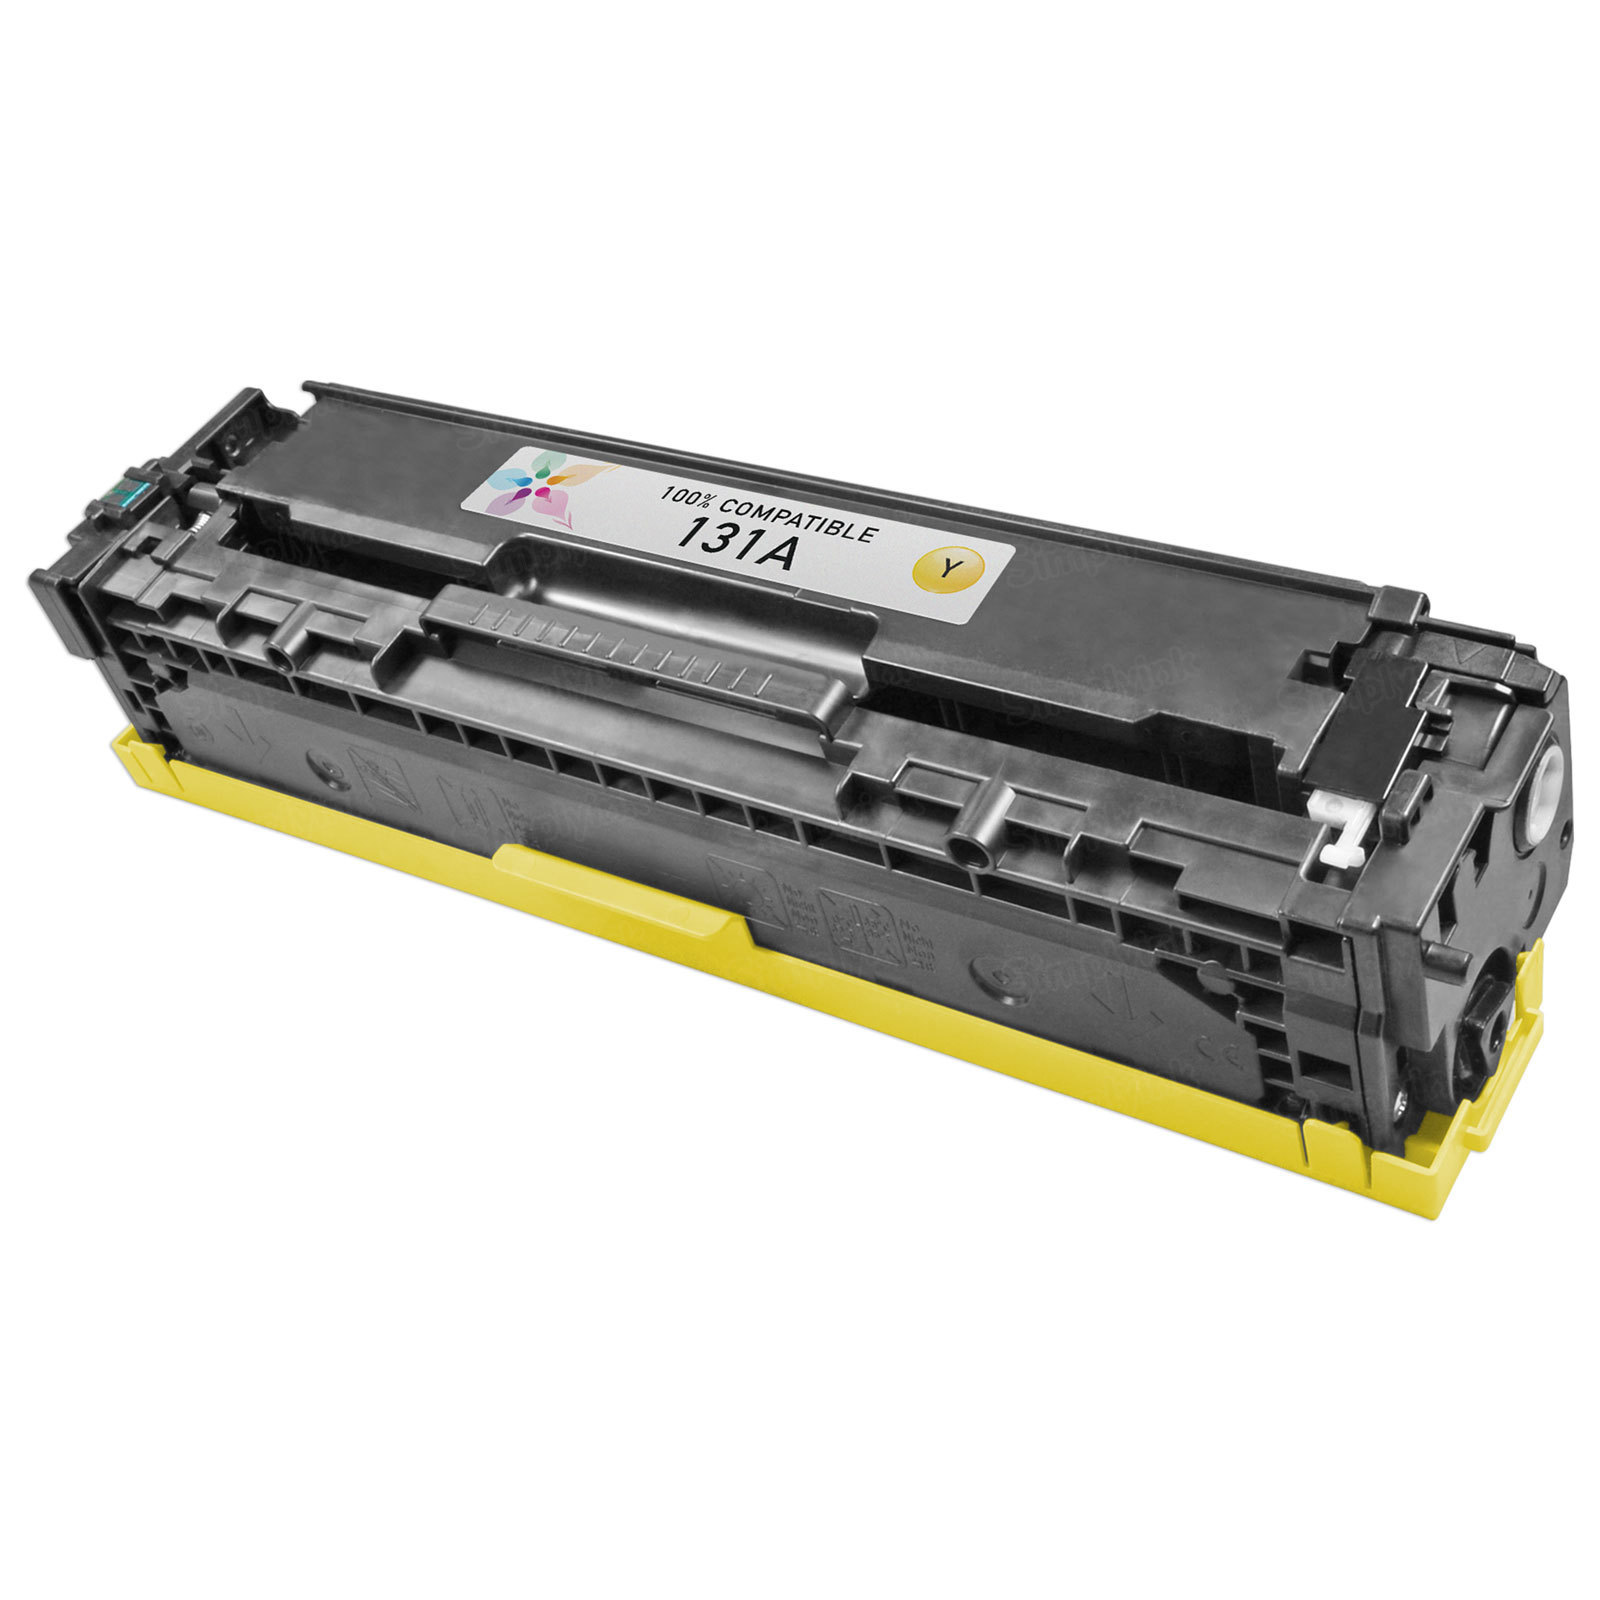 Remanufactured Replacement Yellow Laser Toner for HP 131A